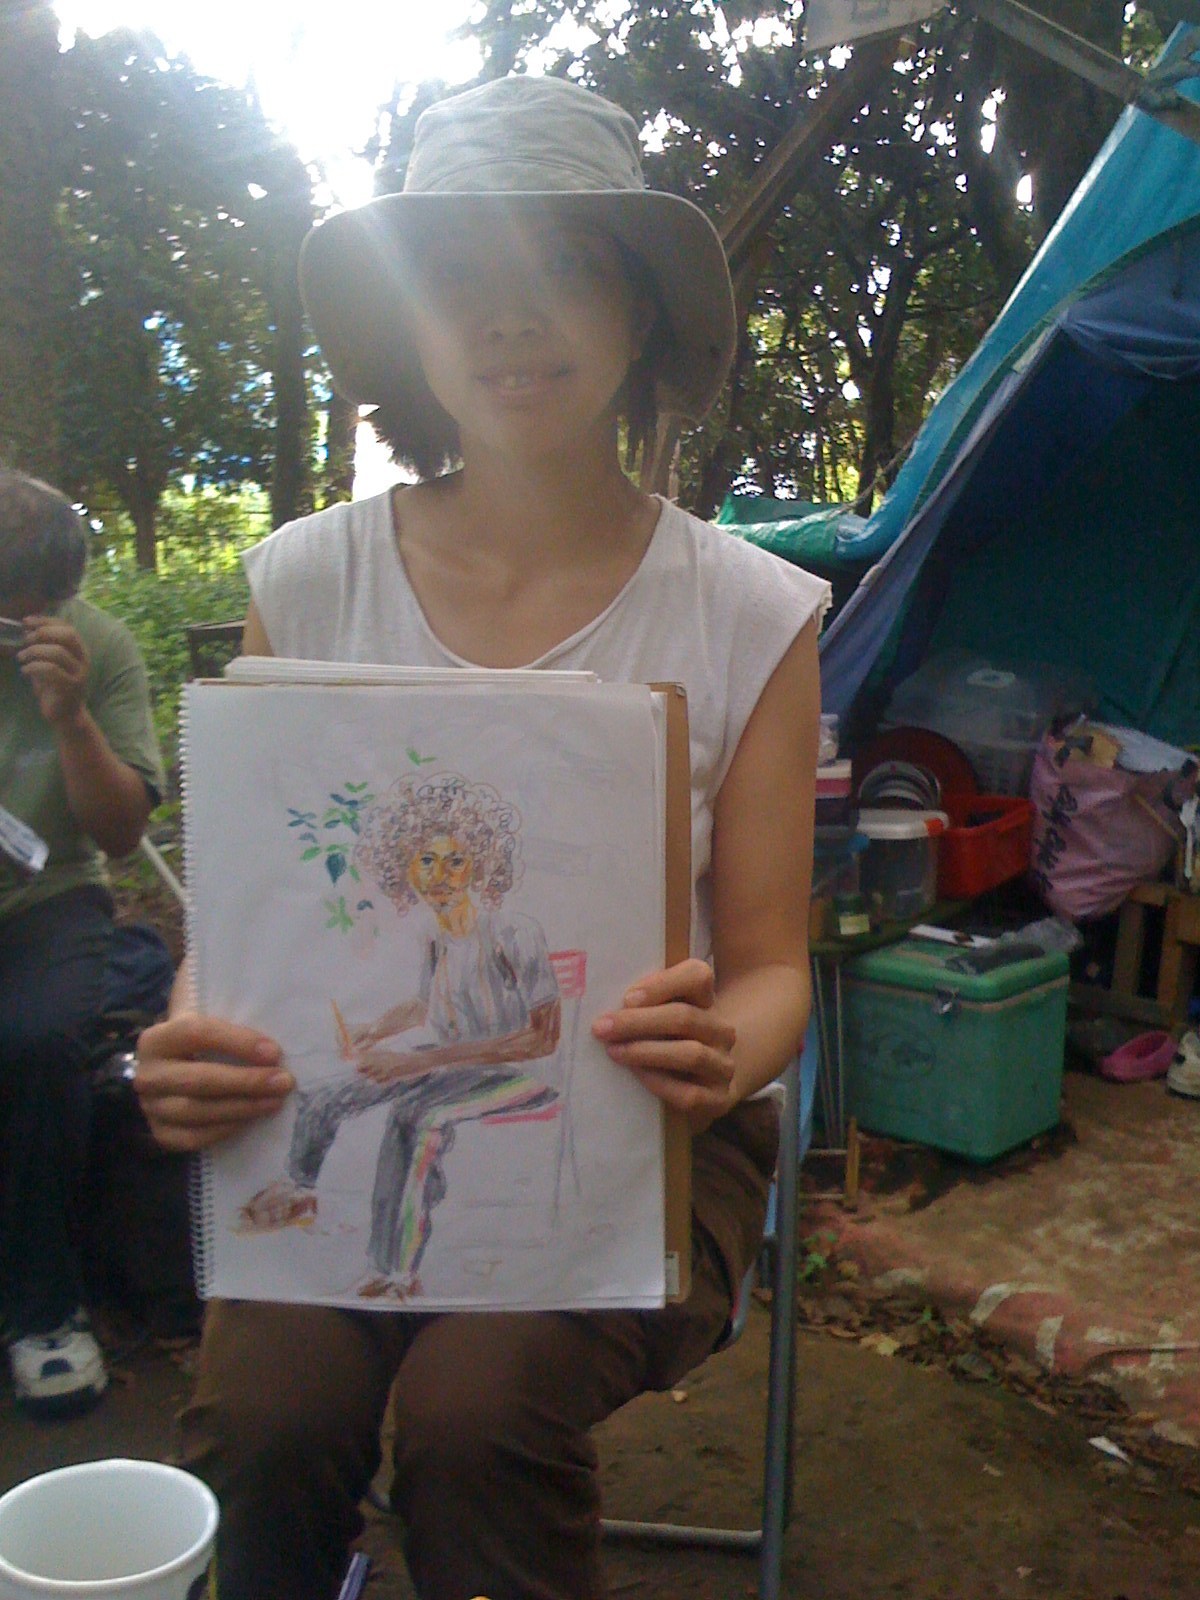 Misako gave me the honour of drawing me